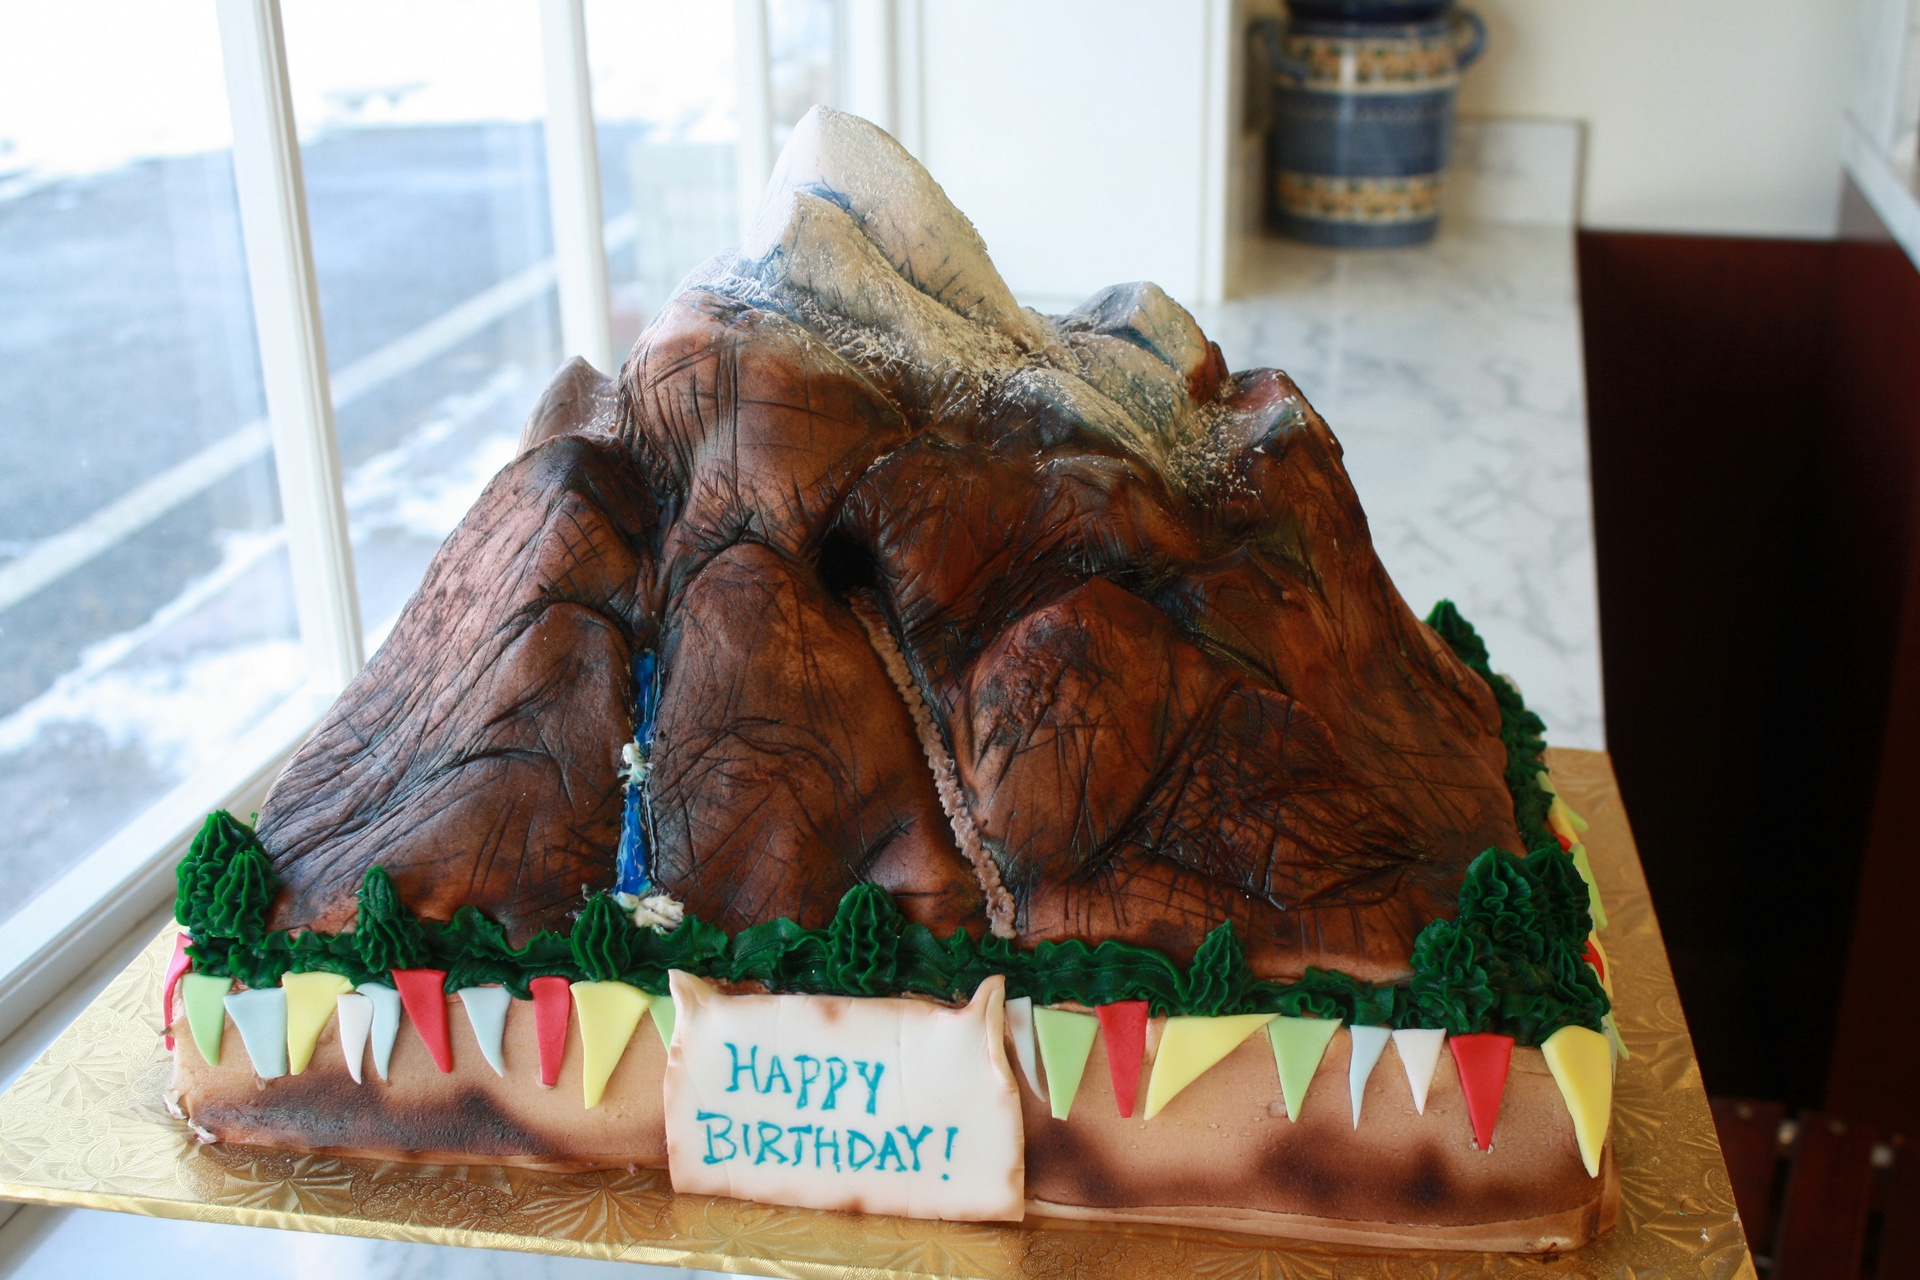 Expedition Everest Cake